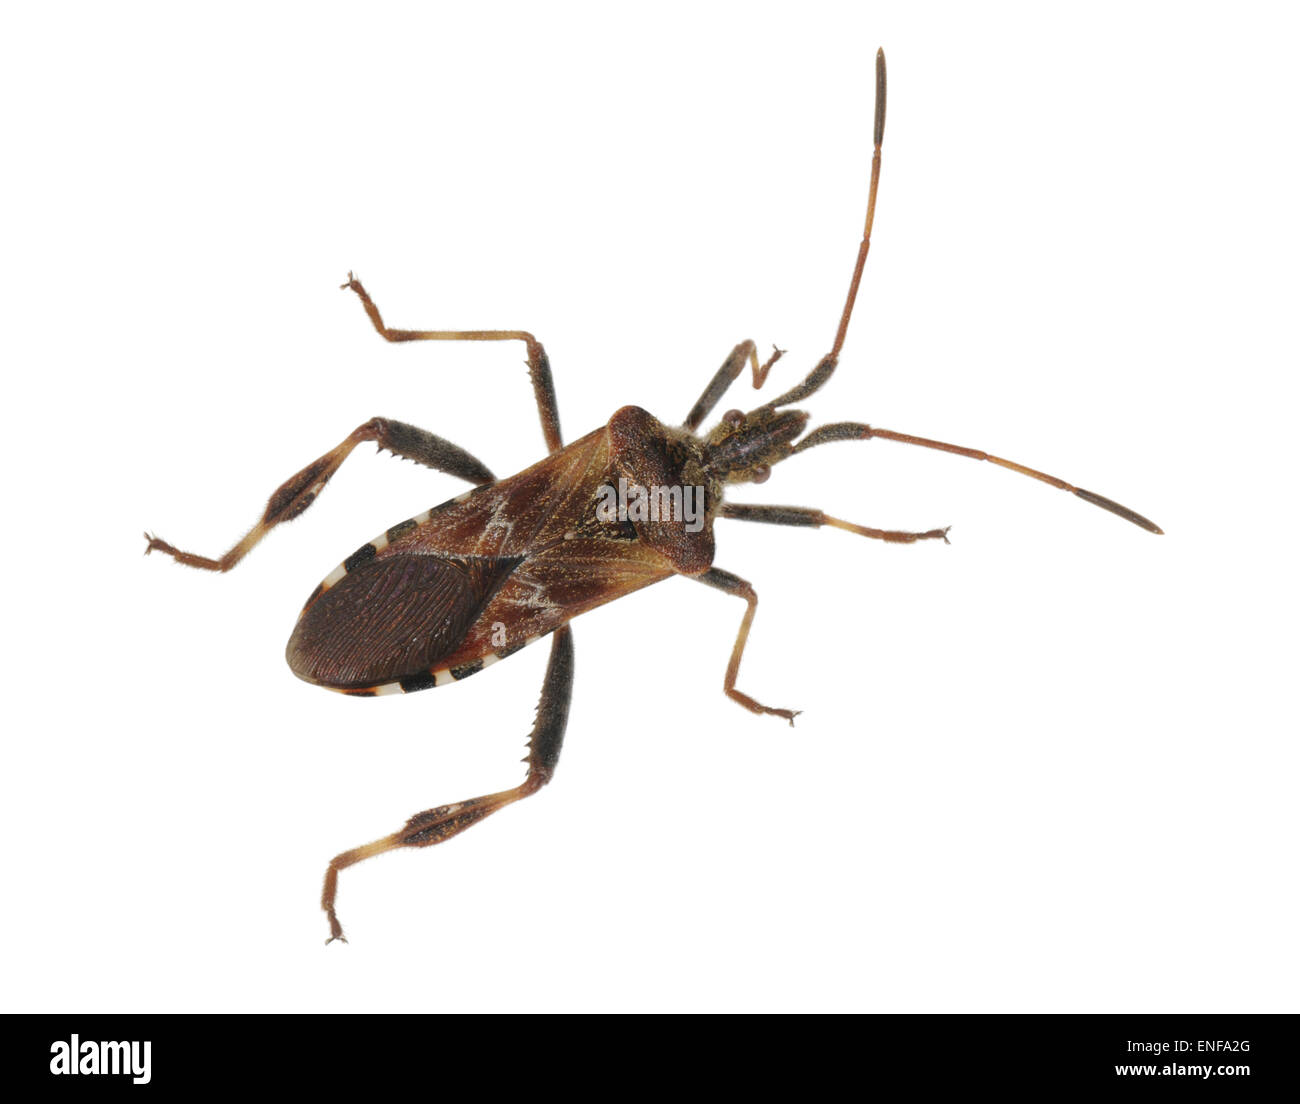 Western Conifer Seed Bug - Leptoglossus occidentalis - Stock Image